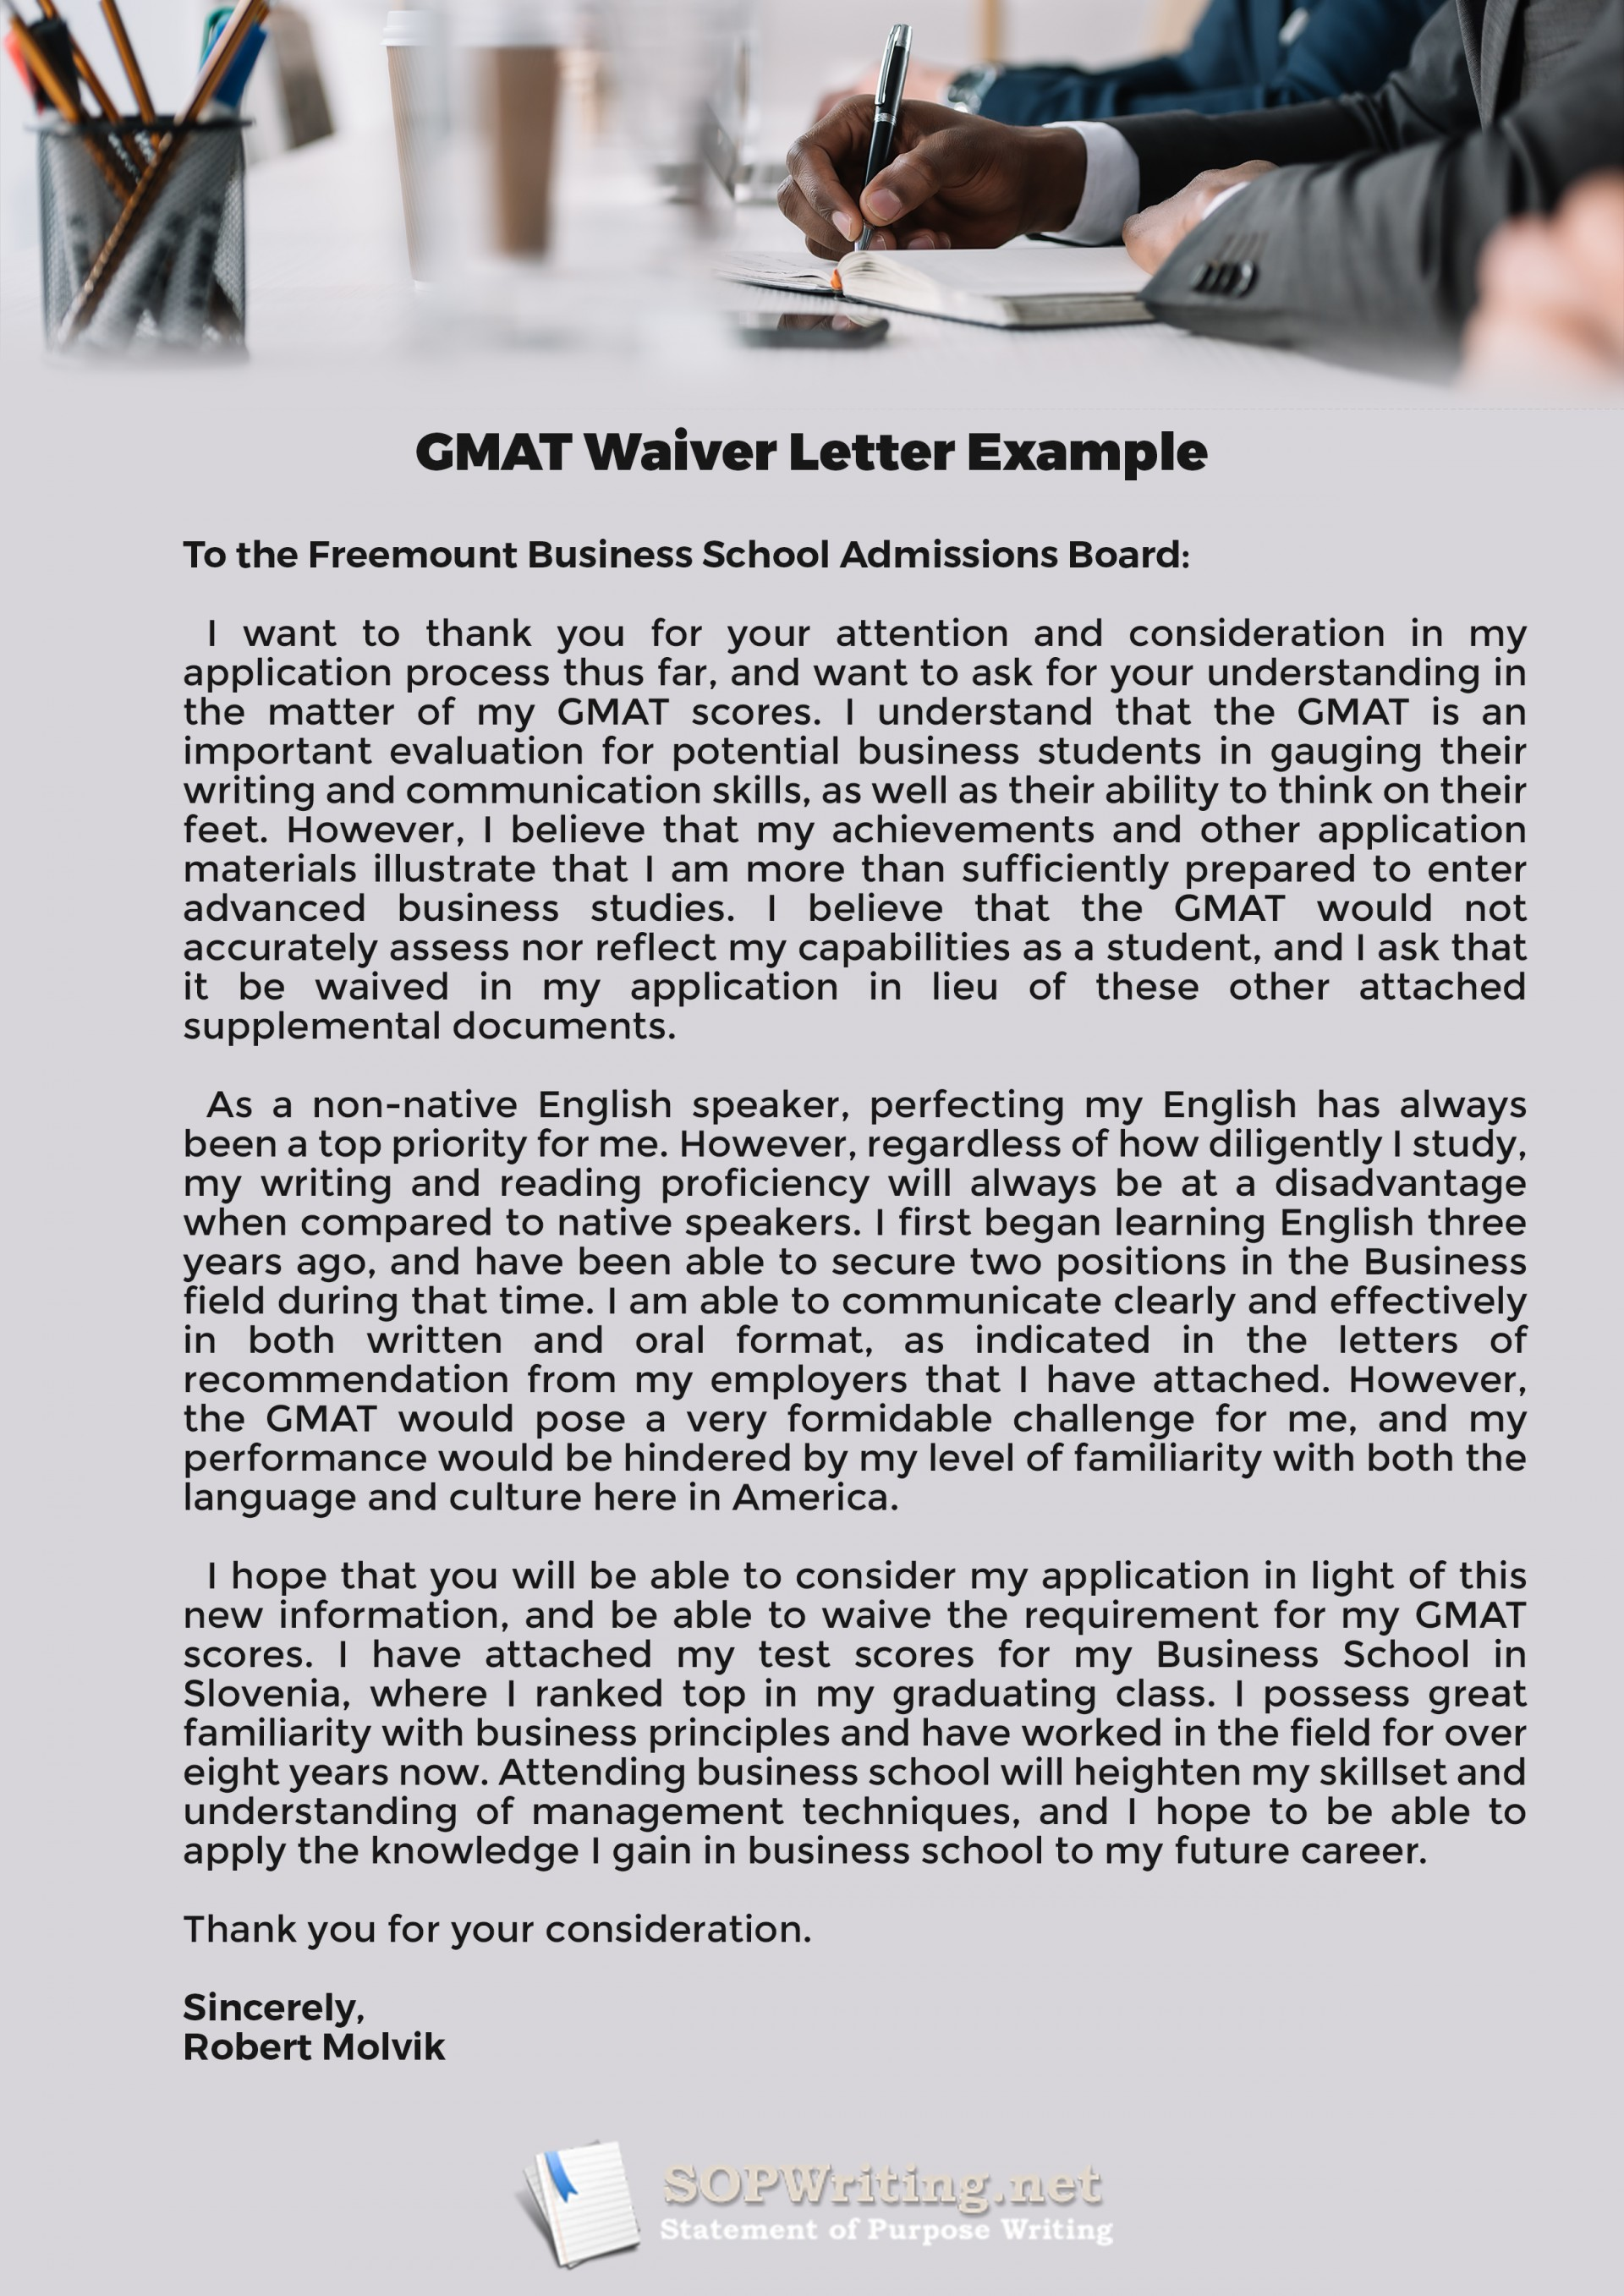 016 Gmat Waiver Letter Example Essay Shocking Sample Topics Awa Essays Free Download 1920